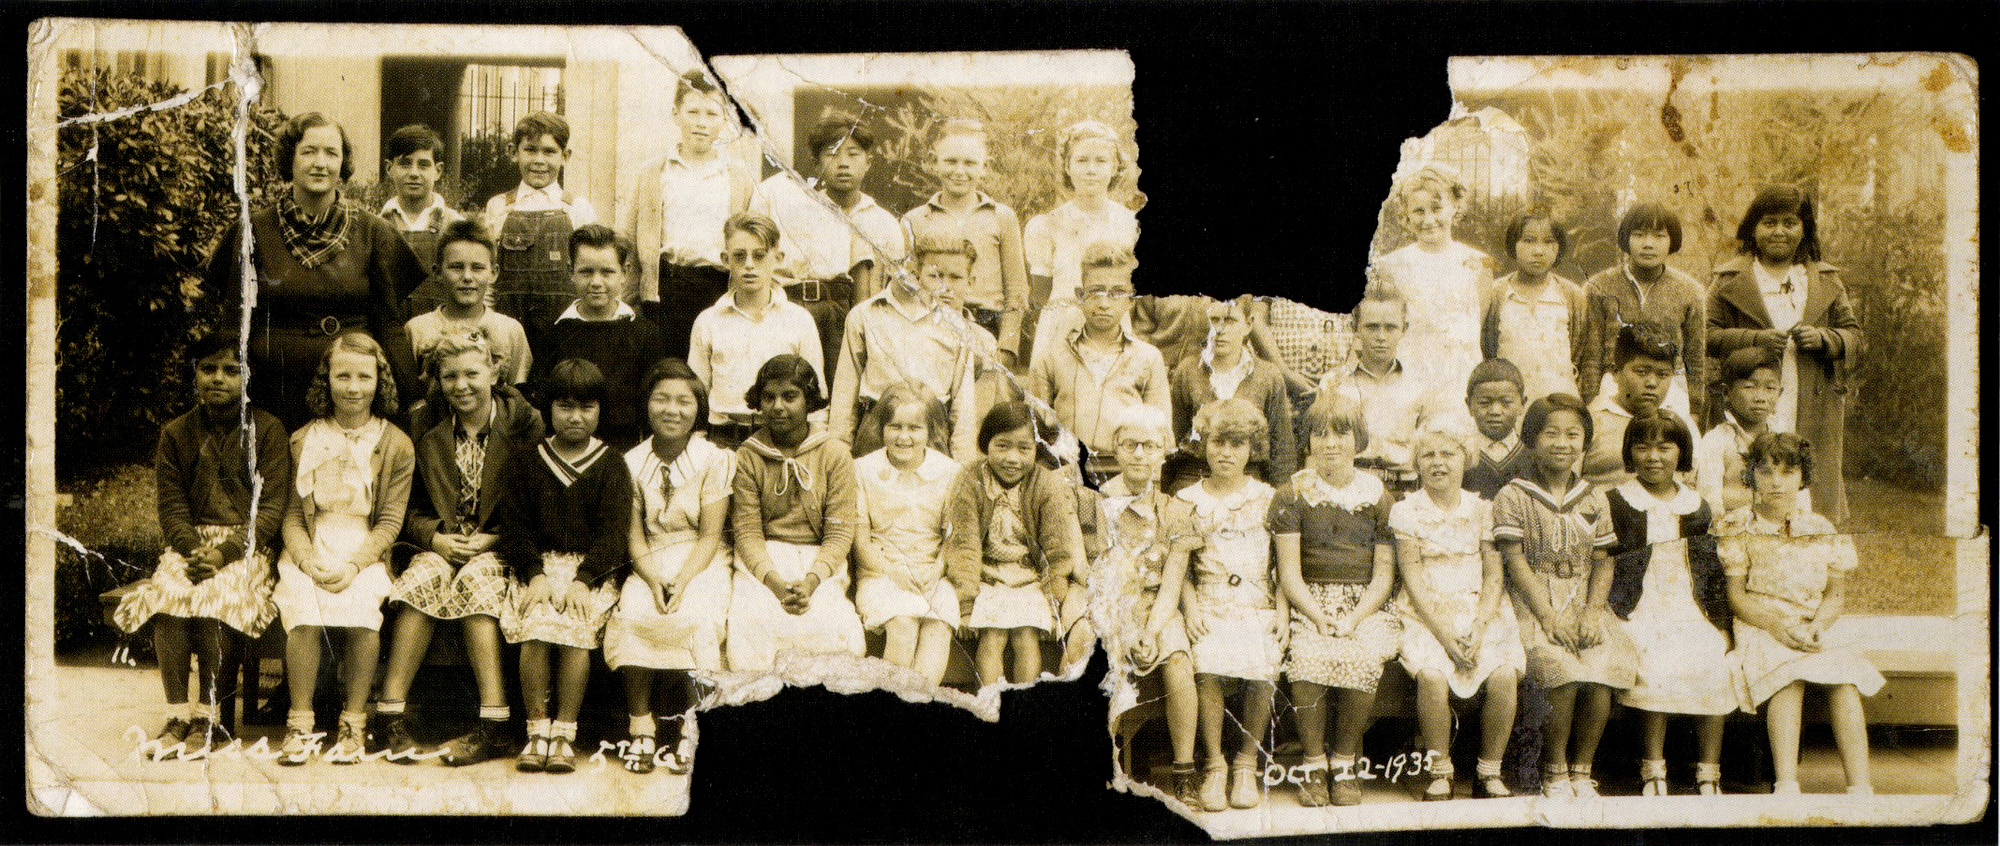 Ruth (front row, center) in Ms. Fain's class, 1935